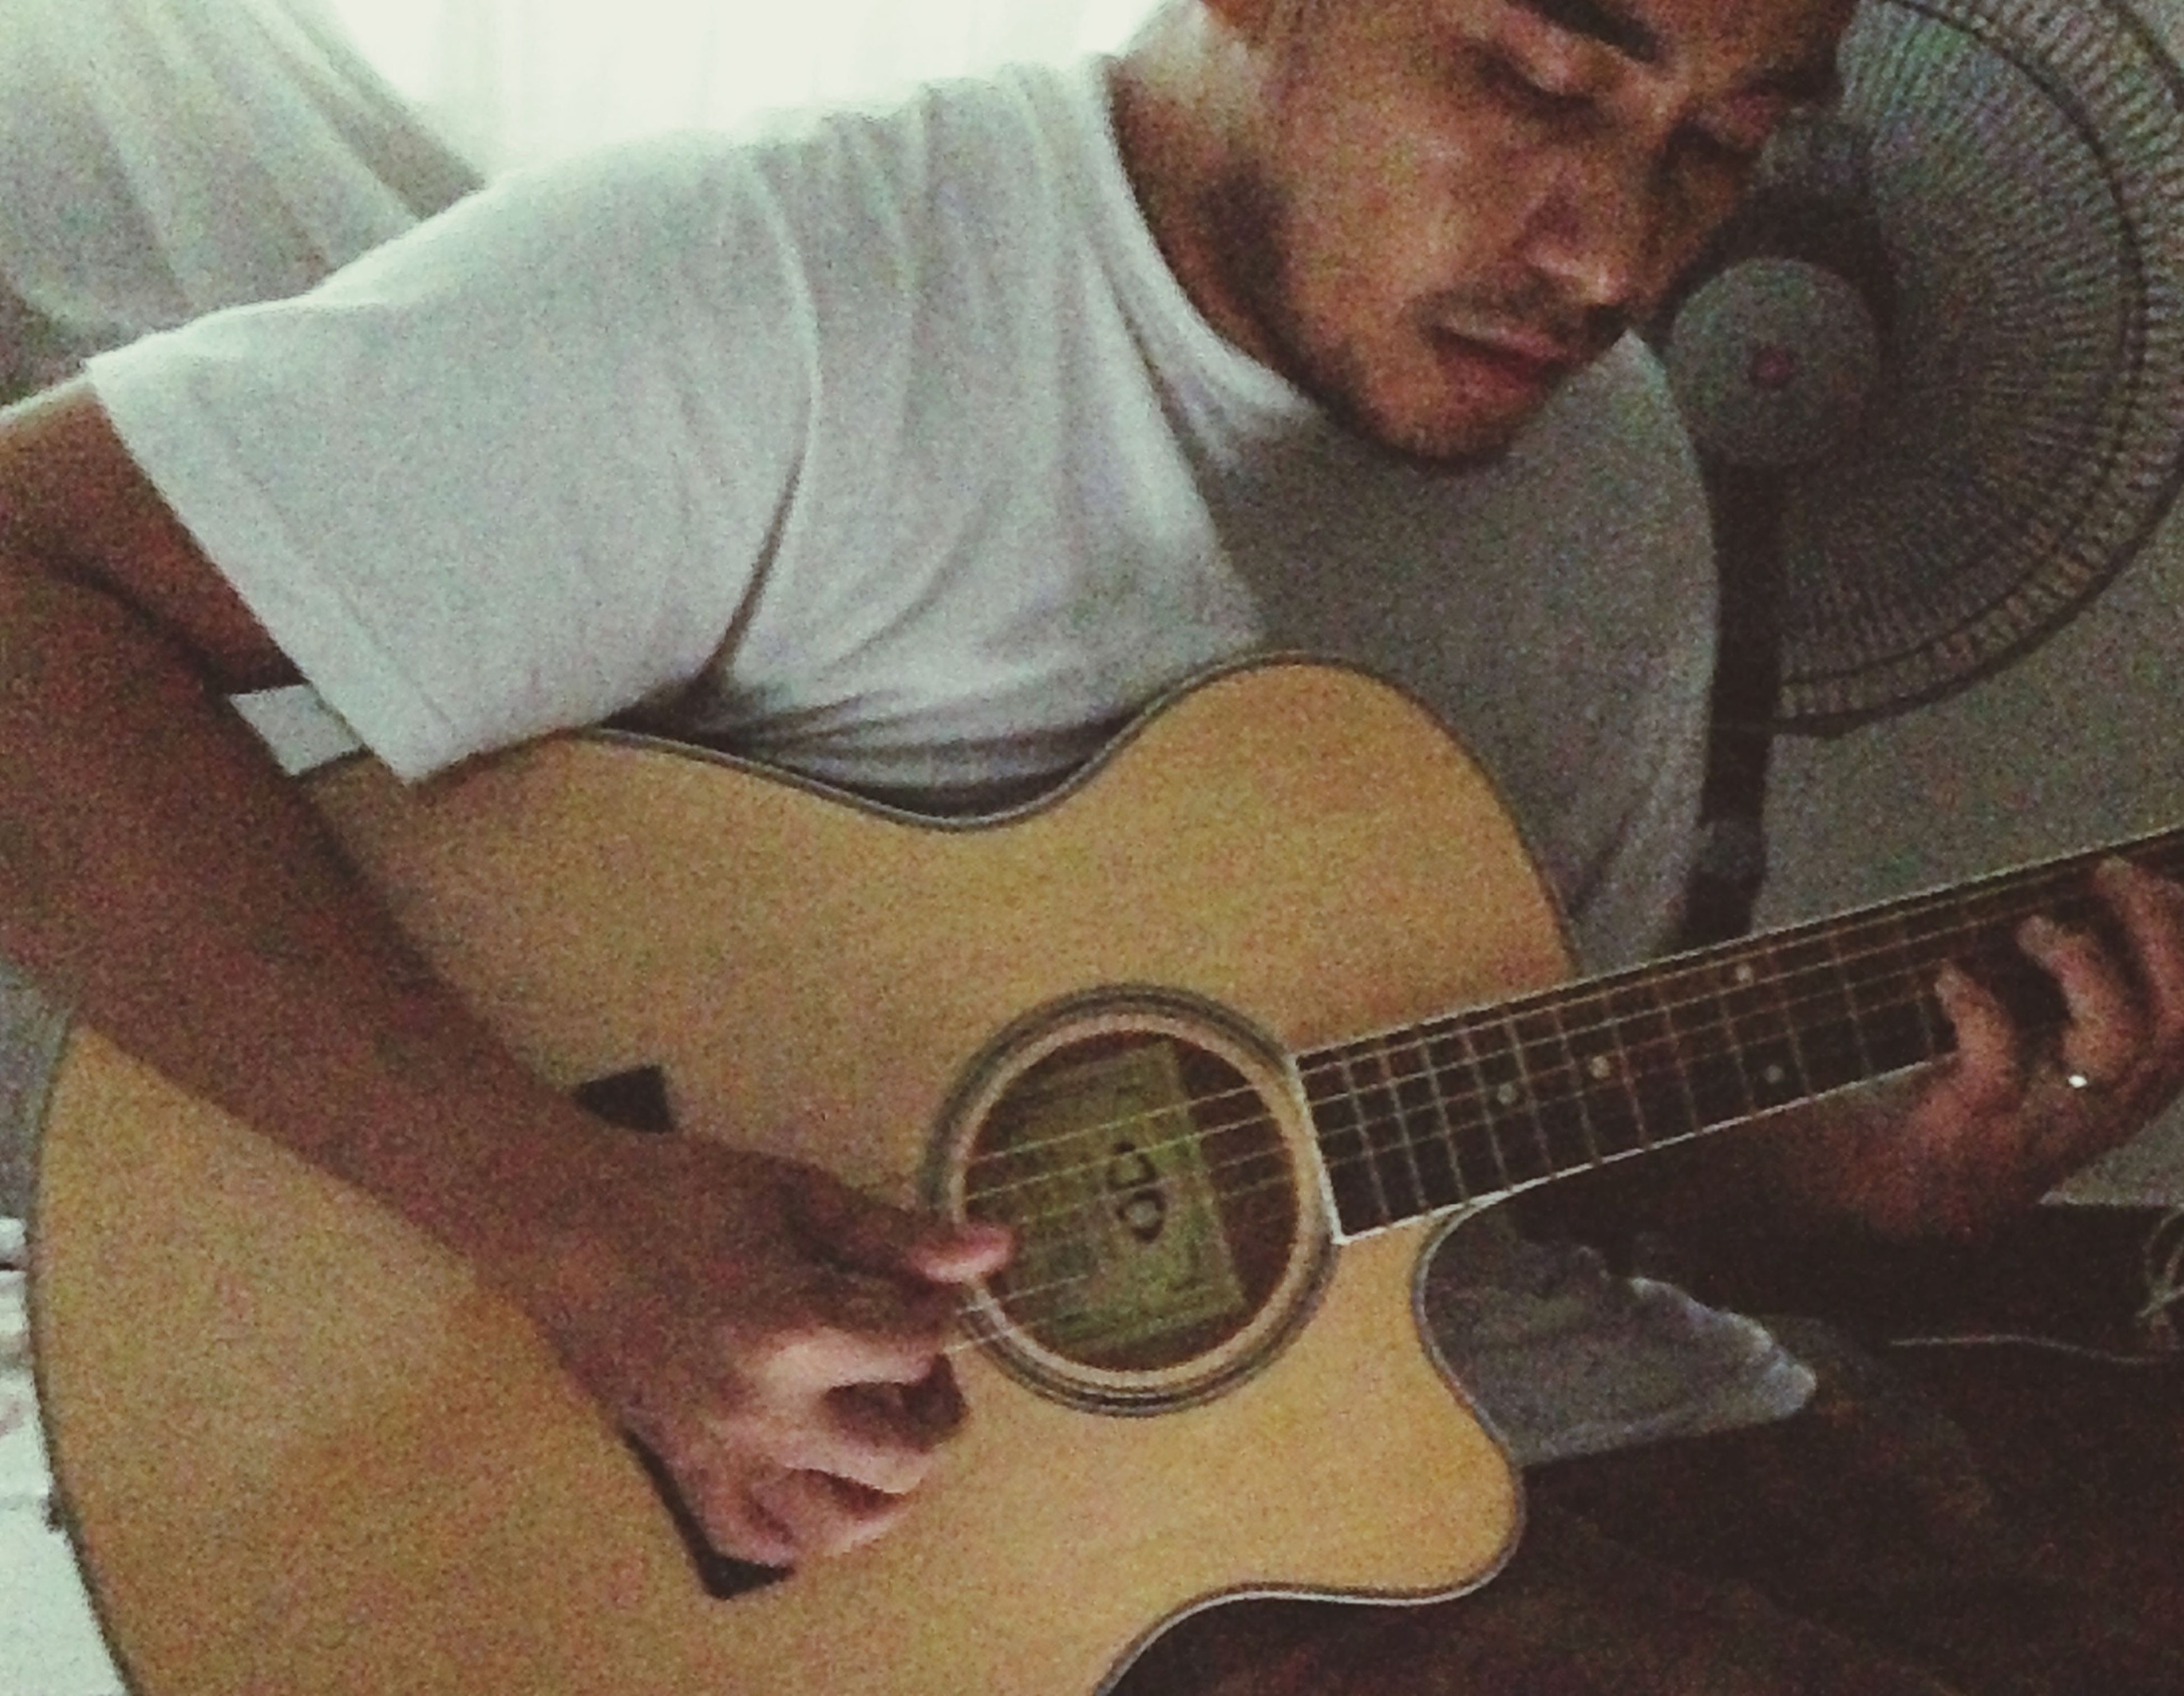 indoors, music, lifestyles, musical instrument, holding, guitar, arts culture and entertainment, leisure activity, casual clothing, person, sitting, technology, wireless technology, musical equipment, young adult, home interior, playing